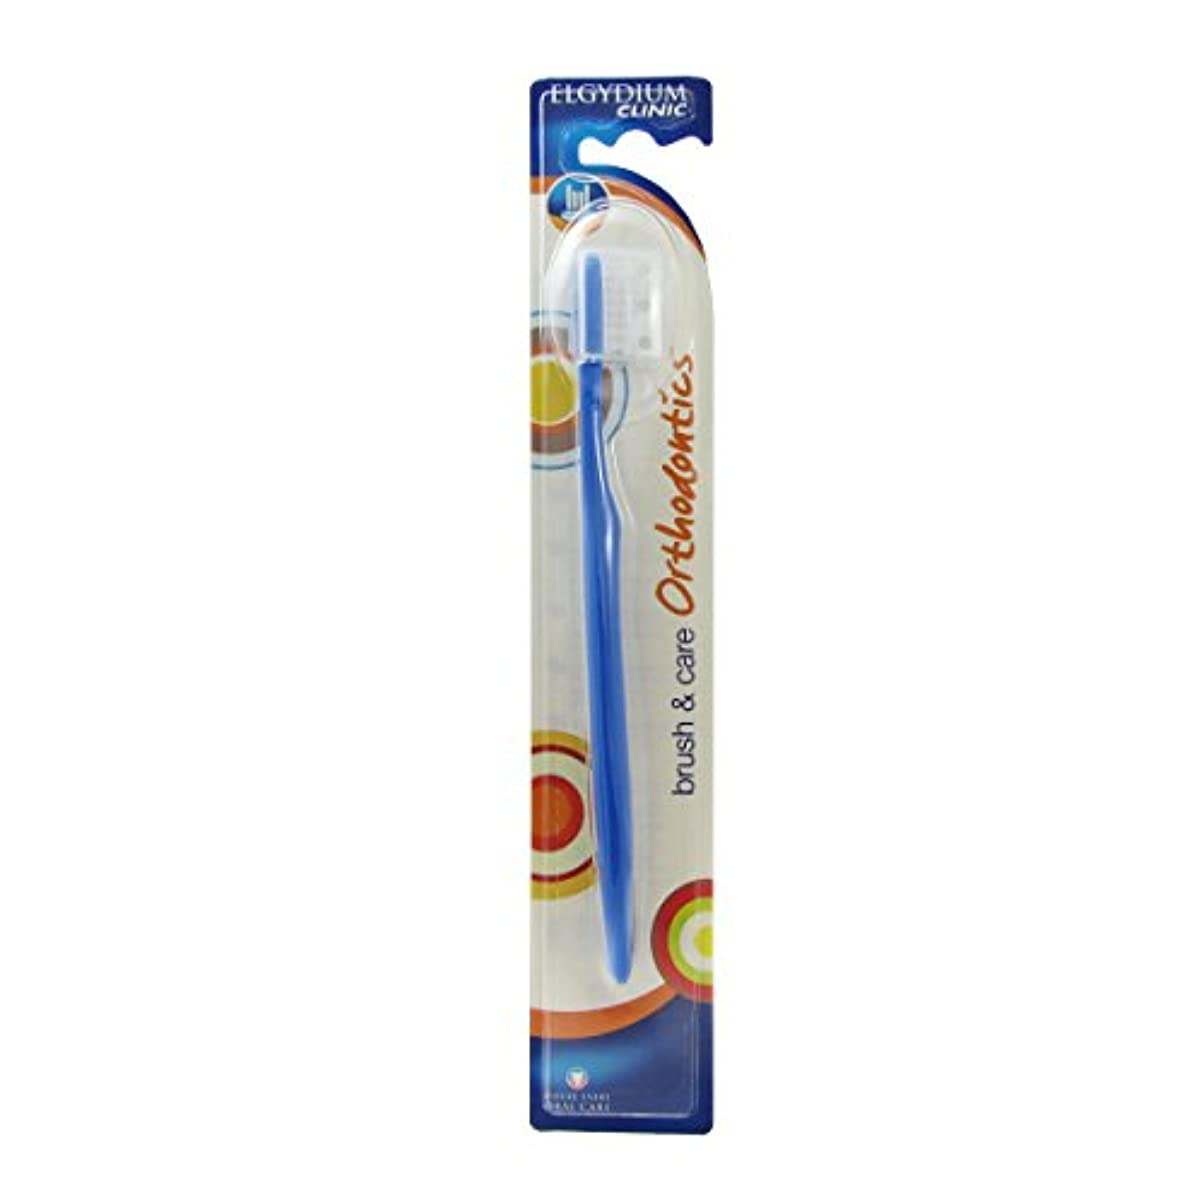 謝る規模懇願するElgydium Clinic Orthodontics Orthodontic Medium Children Toothbrush [並行輸入品]